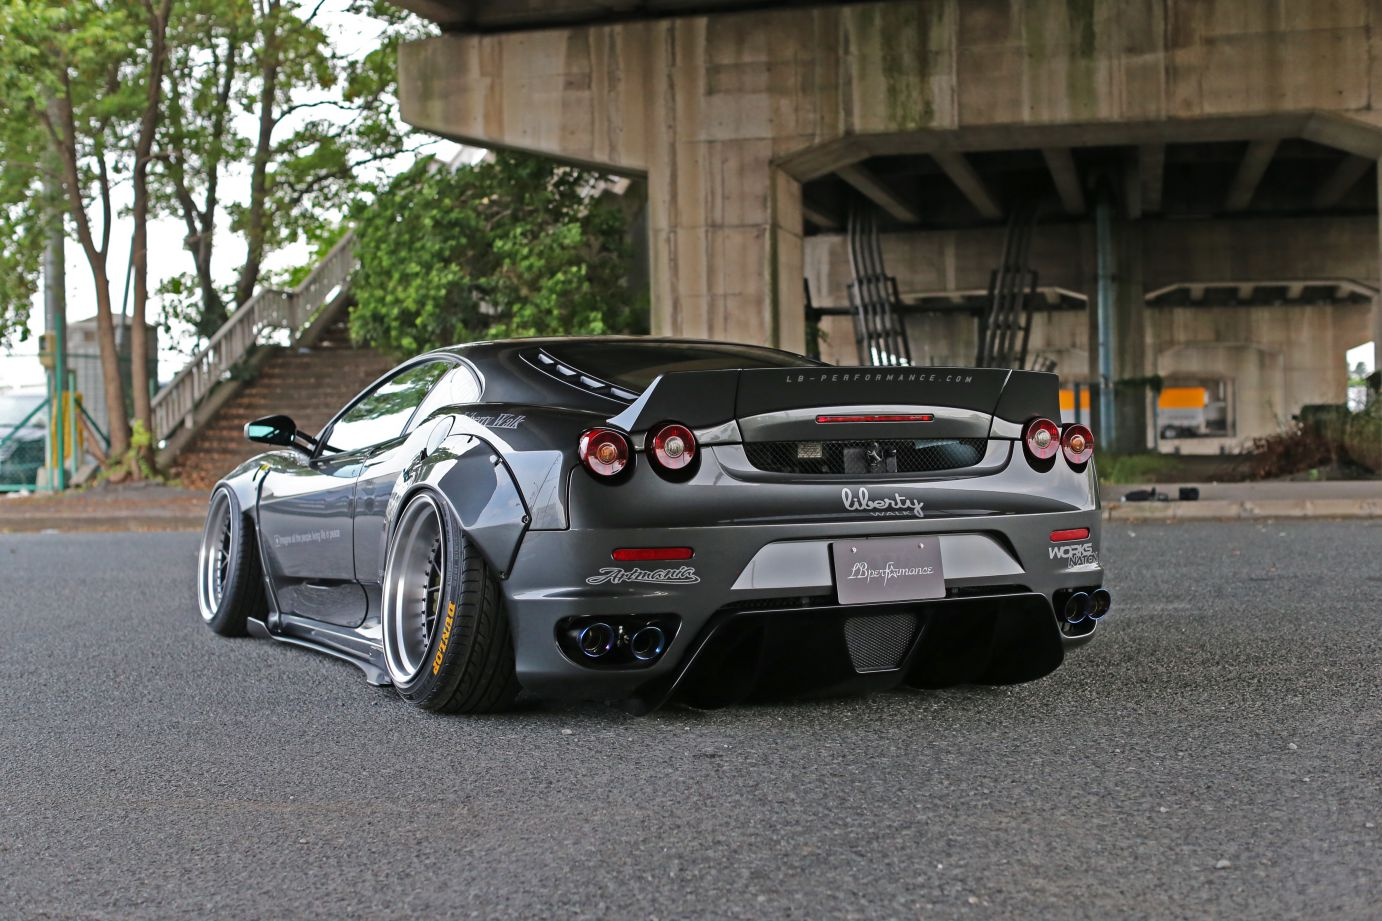 IMG_0782_compressed LB-WORKS F430